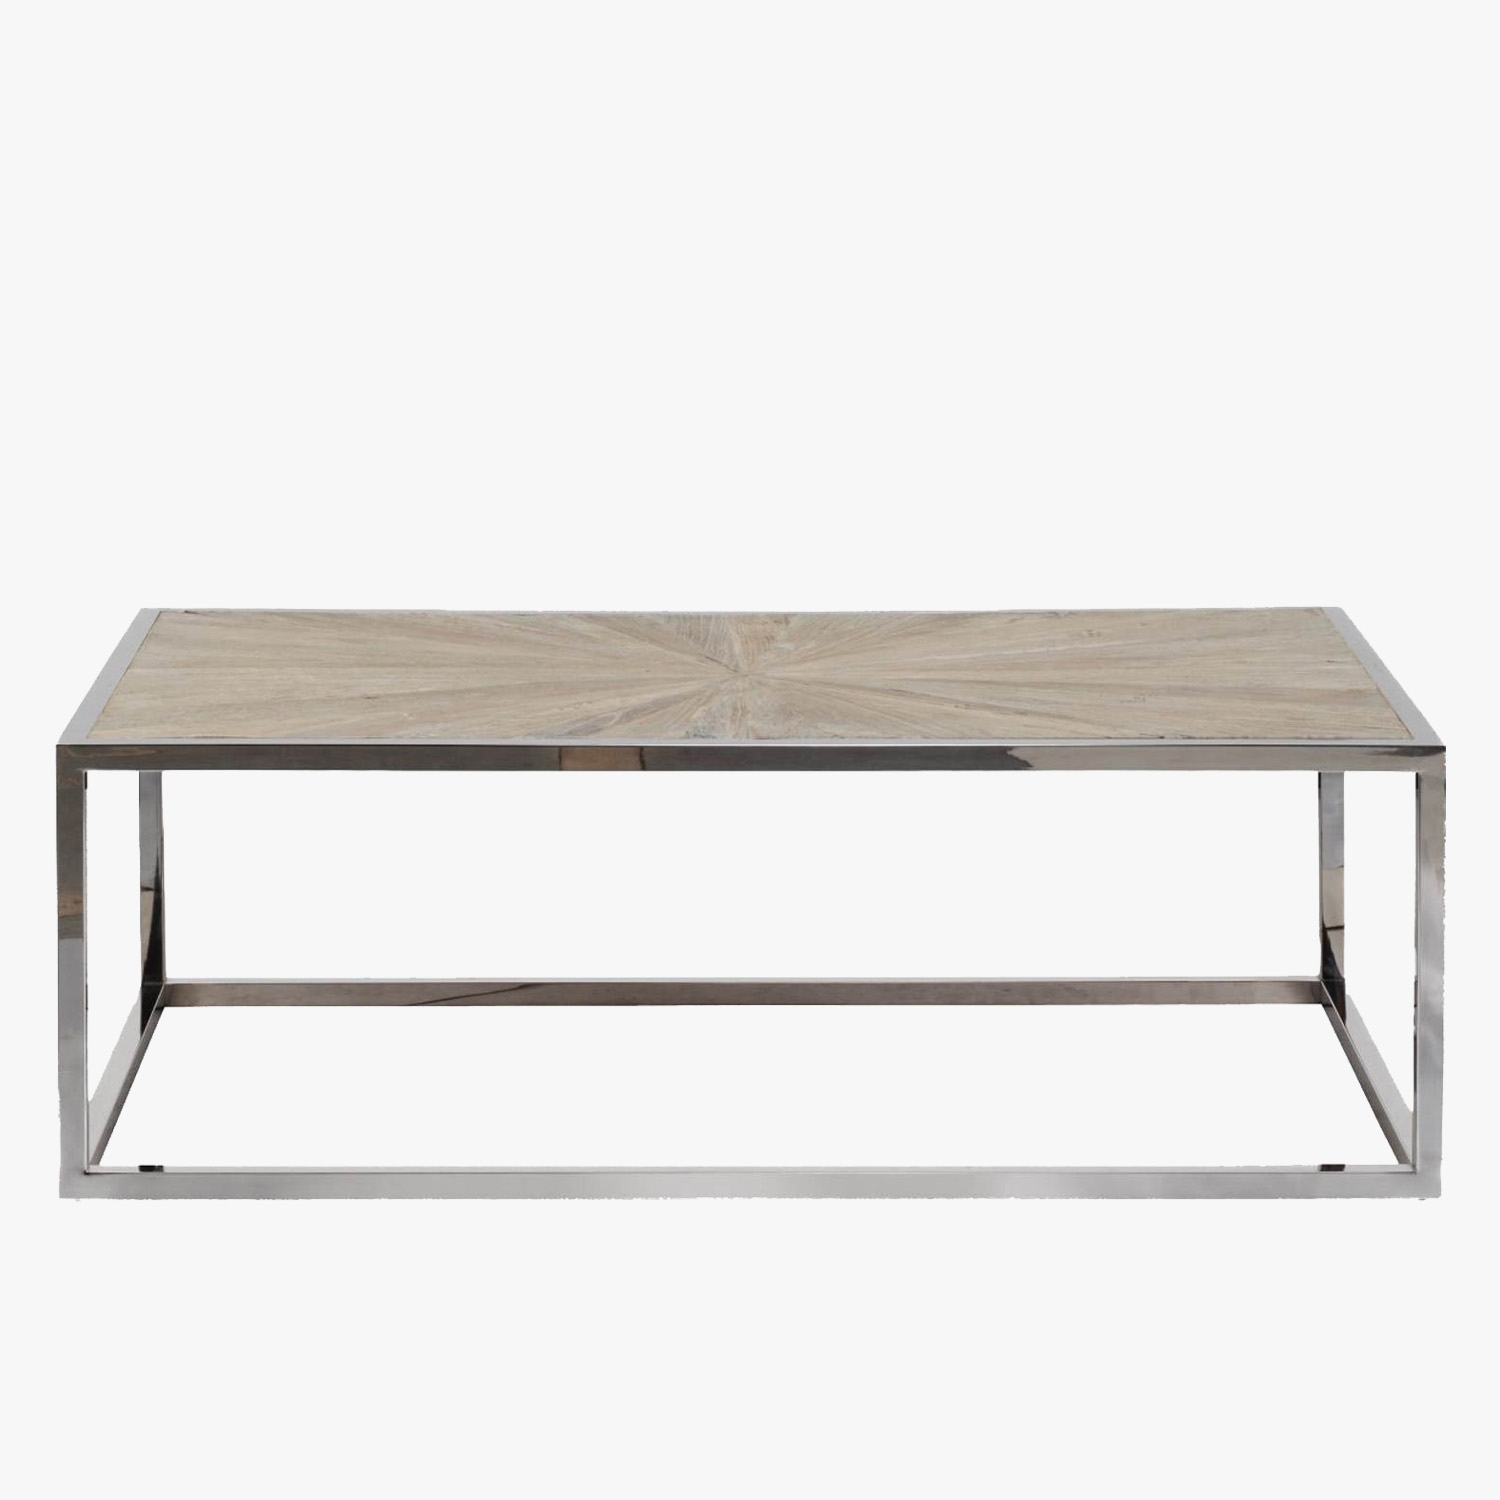 Parquet Top Chrome Coffee Table – Shop Coffee Tables – Dear Keaton Regarding Parquet Coffee Tables (View 8 of 30)